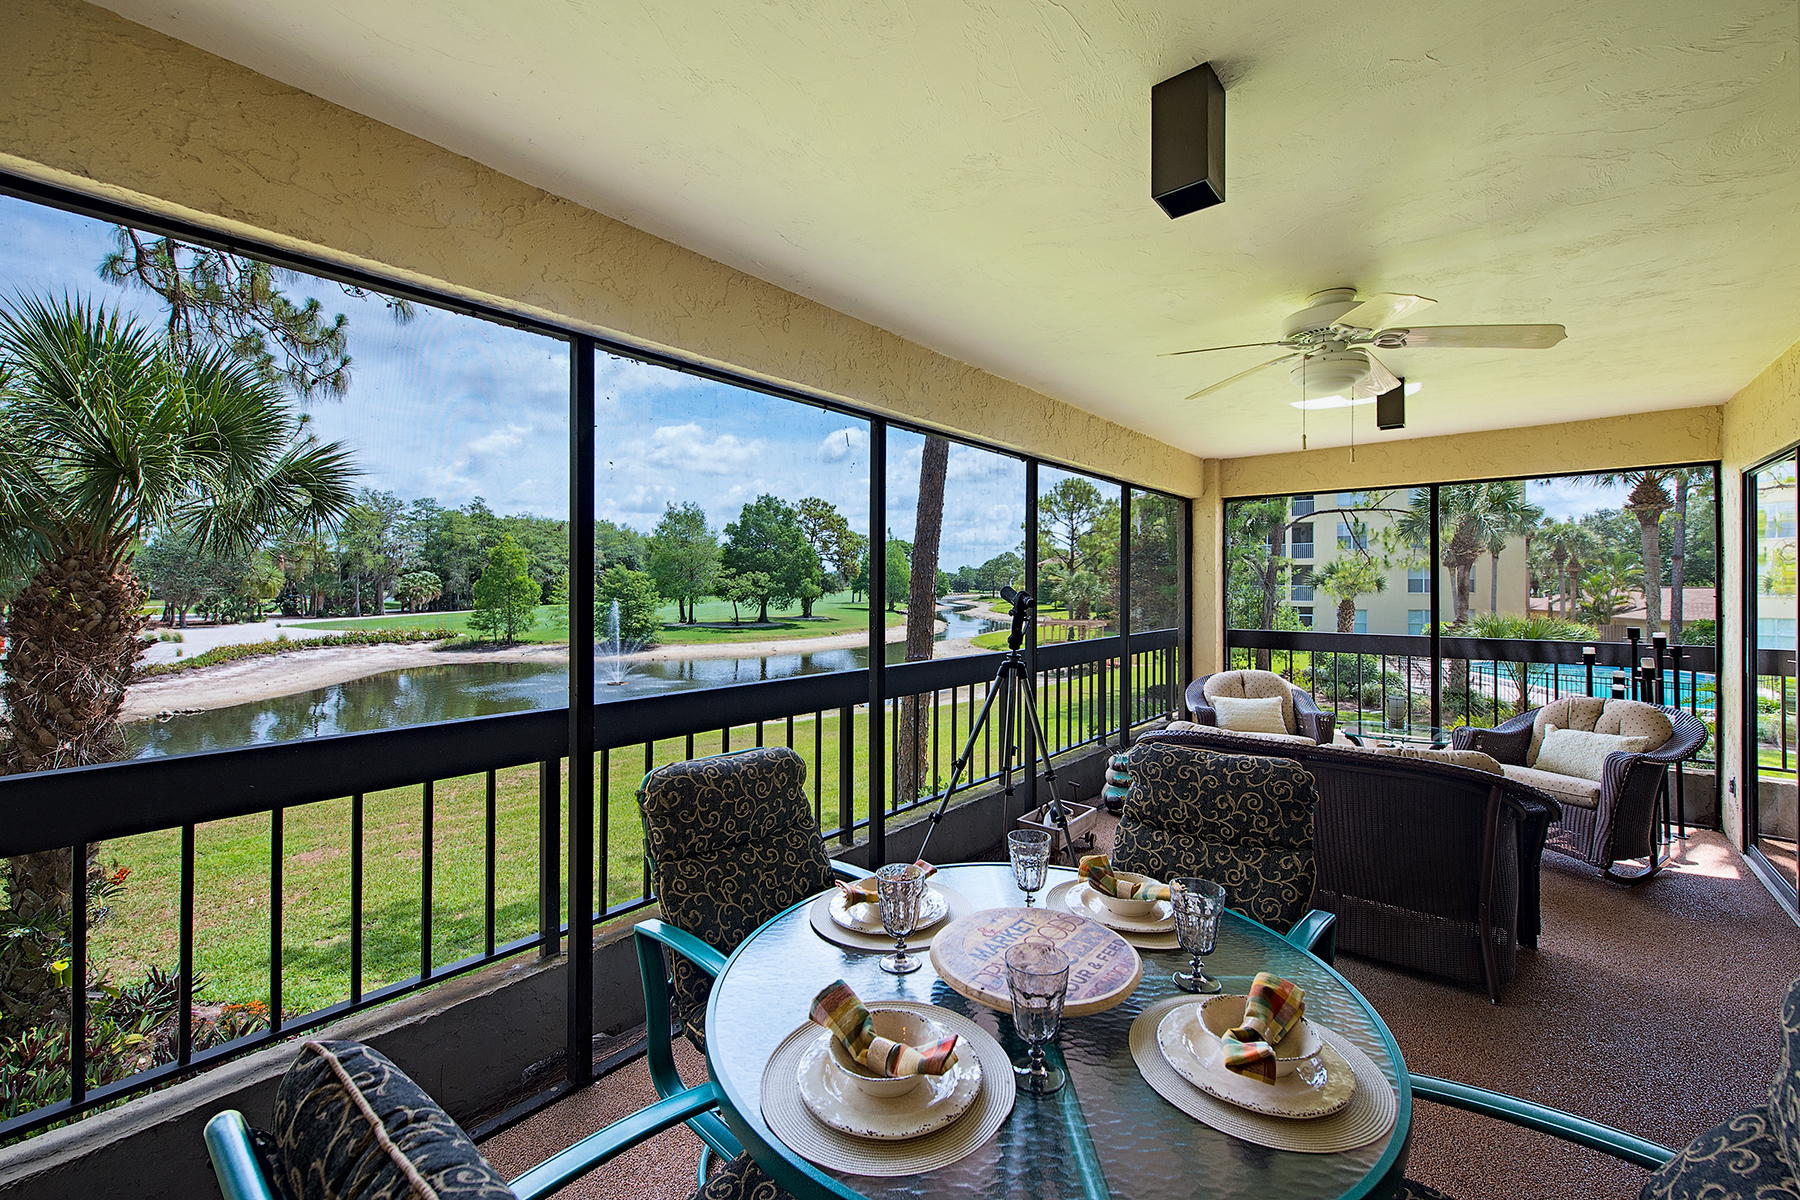 Condominium for Sale at 200 Wyndemere Way , B-204, Naples, FL 34105 200 Wyndemere Way B-204, Naples, Florida 34105 United States